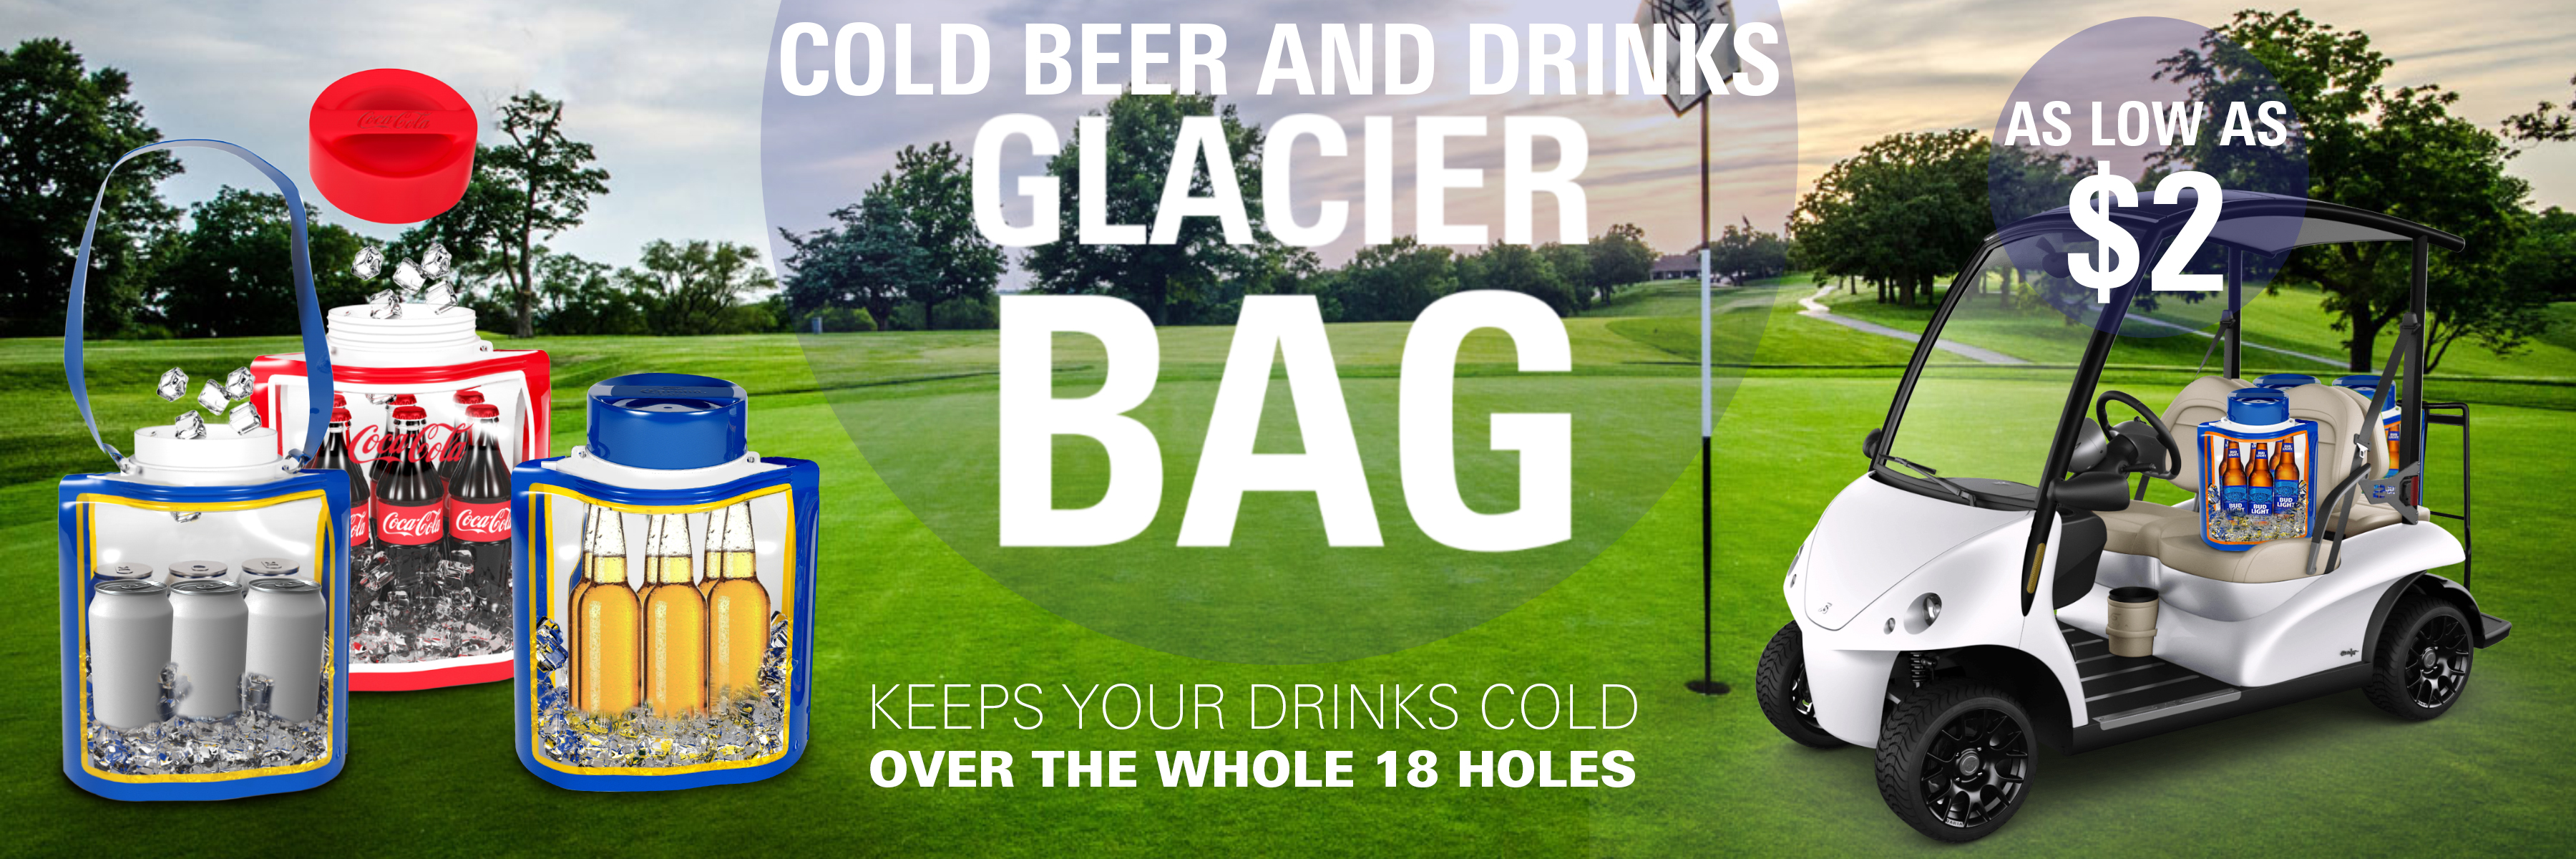 glacier bag golf course